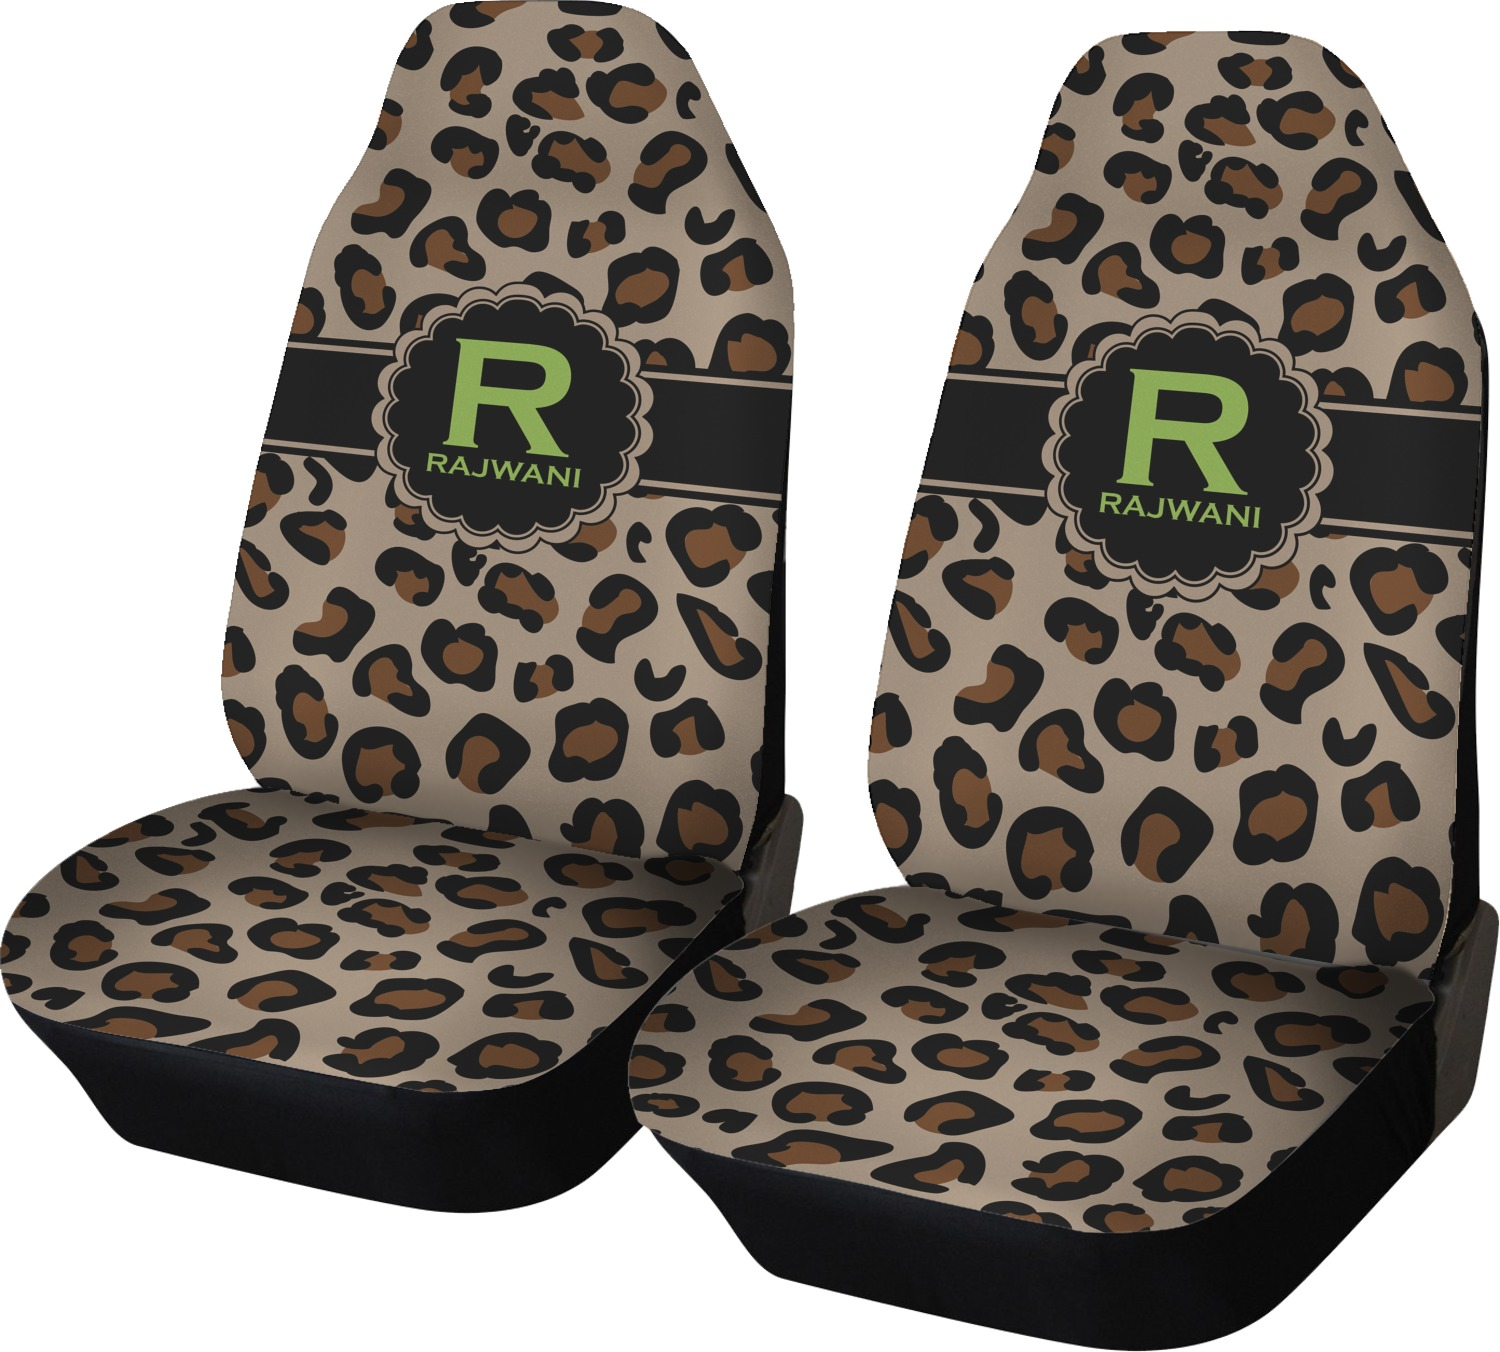 Granite Leopard Car Seat Covers Set Of Two Personalized